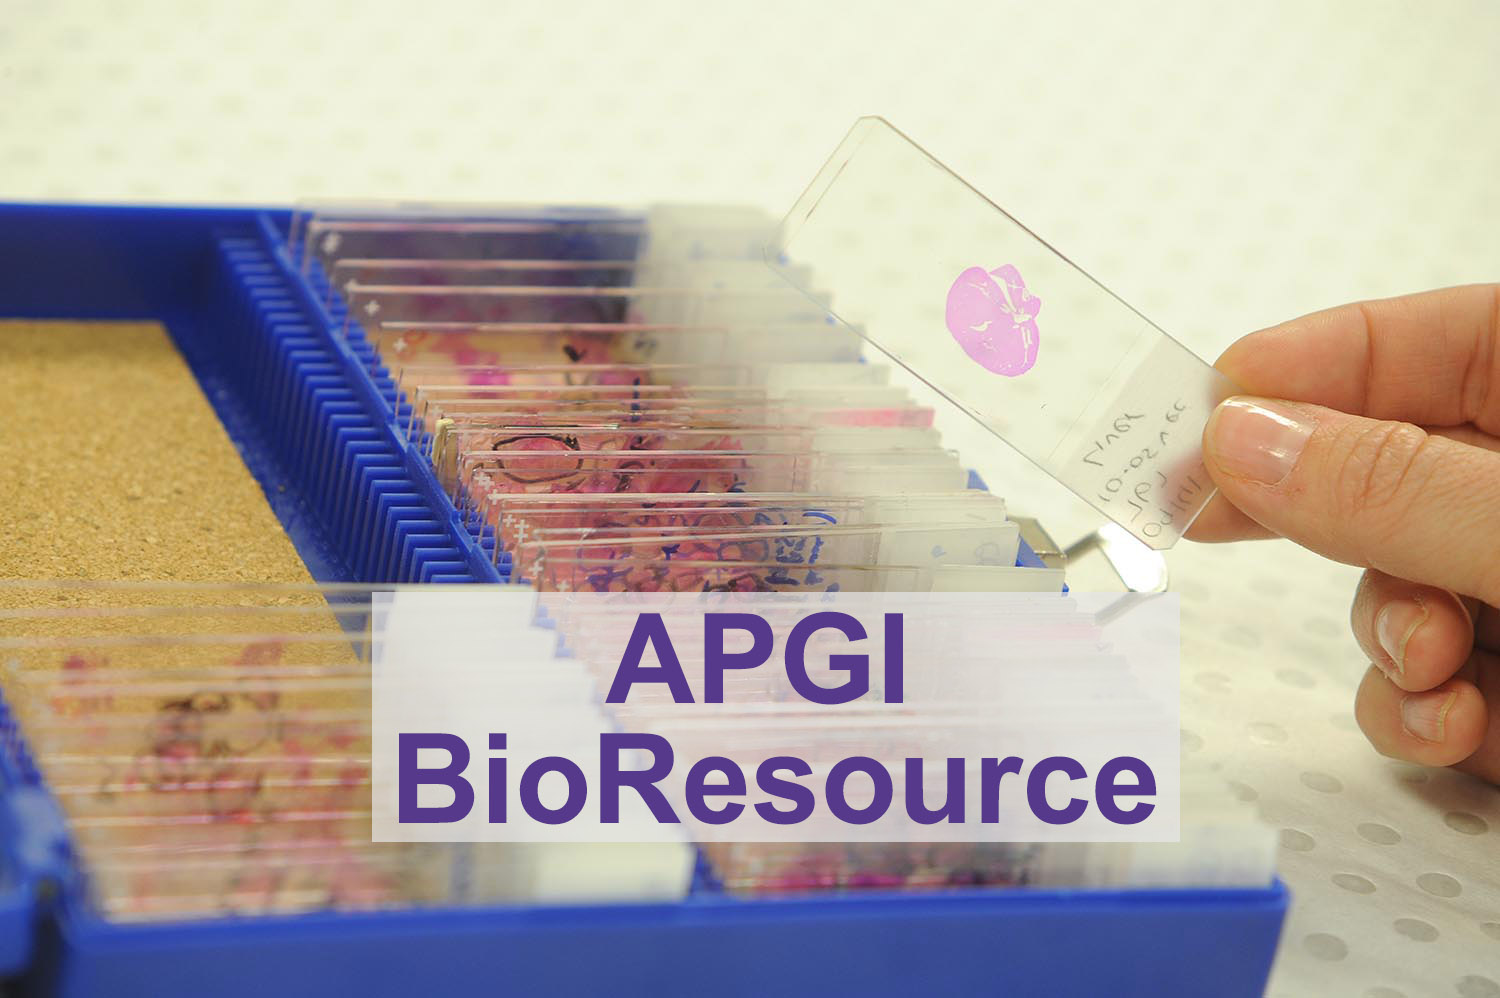 APGI BioResource